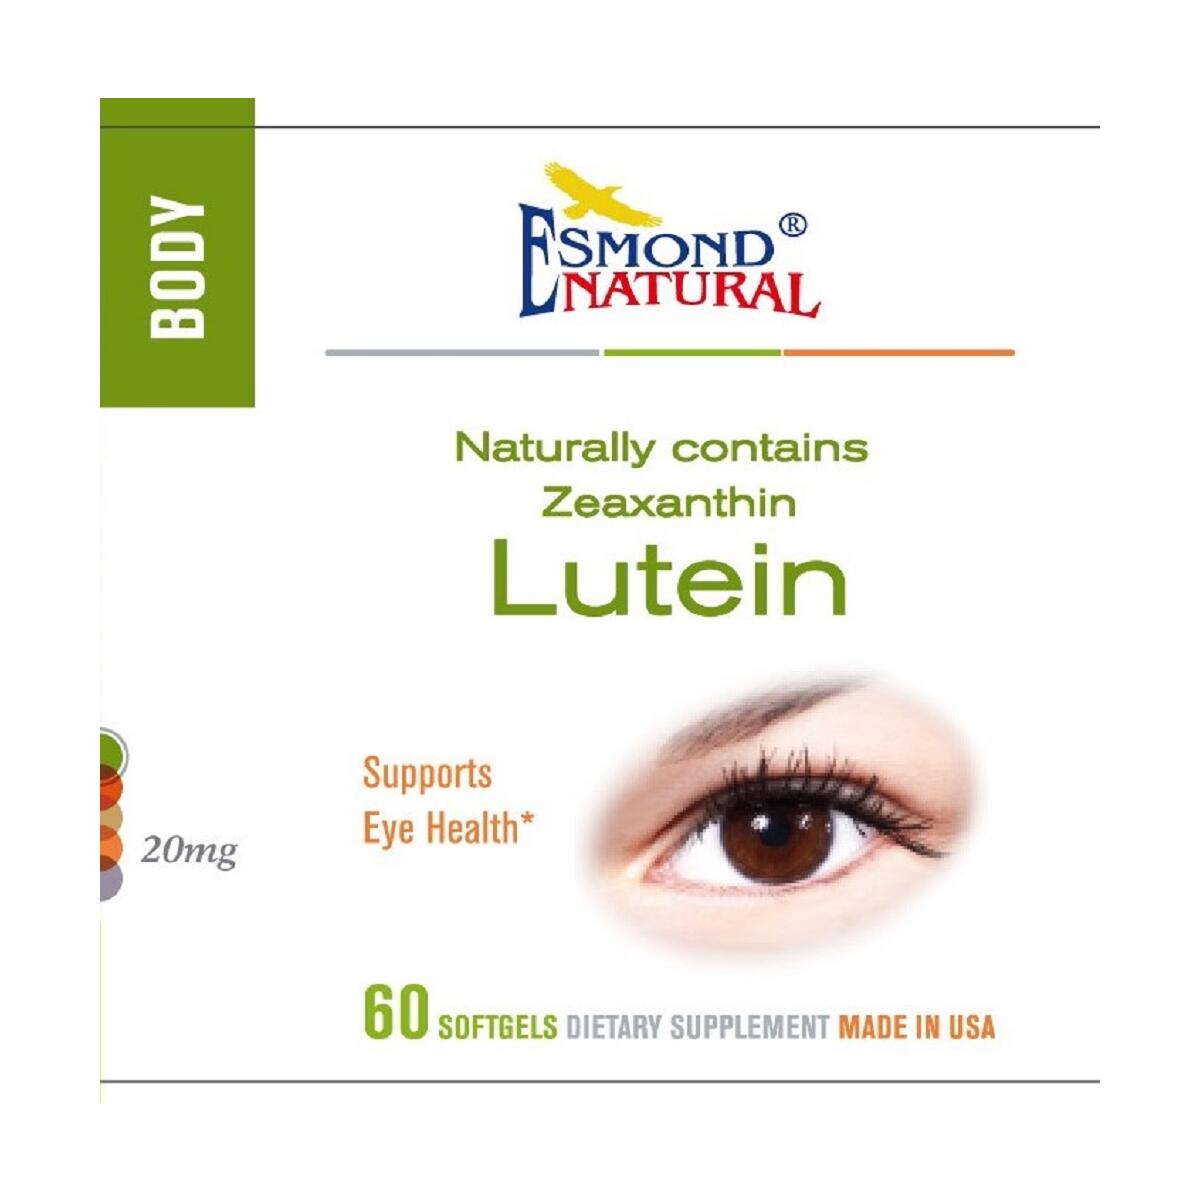 Esmond Natural: Lutein (Naturally Contains Zeaznthin, Supports Eye Health), GMP, Natural Product Assn Certified, Made in USA-20mg, 60 Softgels